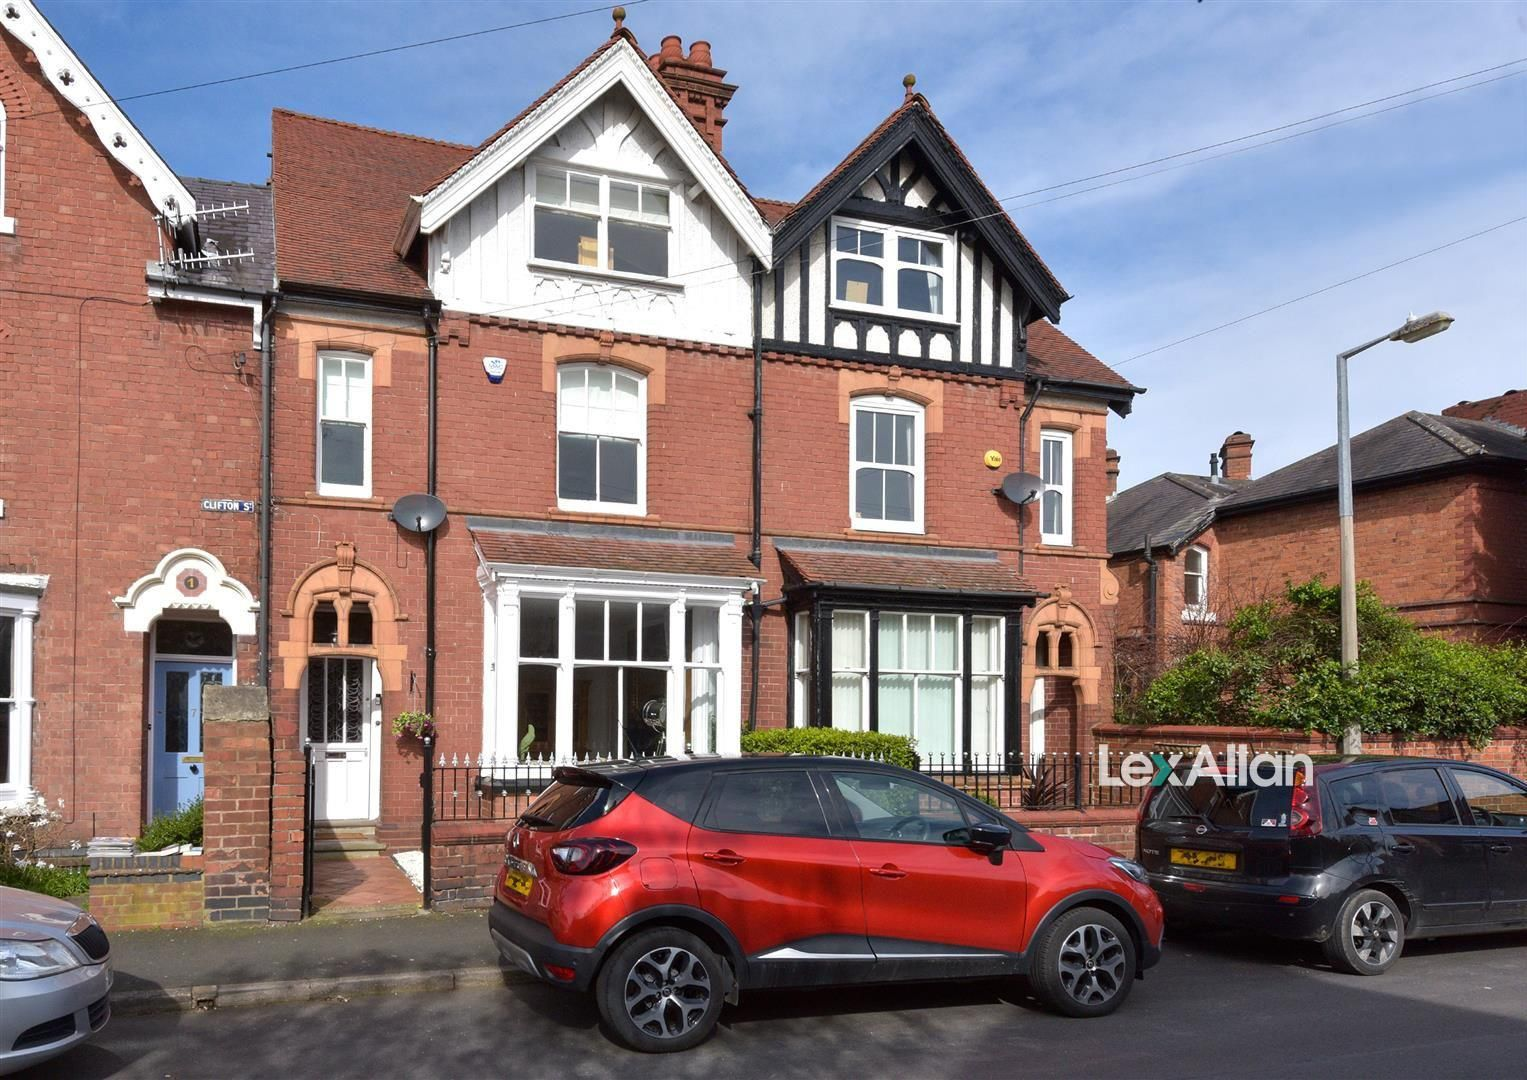 4 bed terraced for sale in Old Quarter - Property Image 1